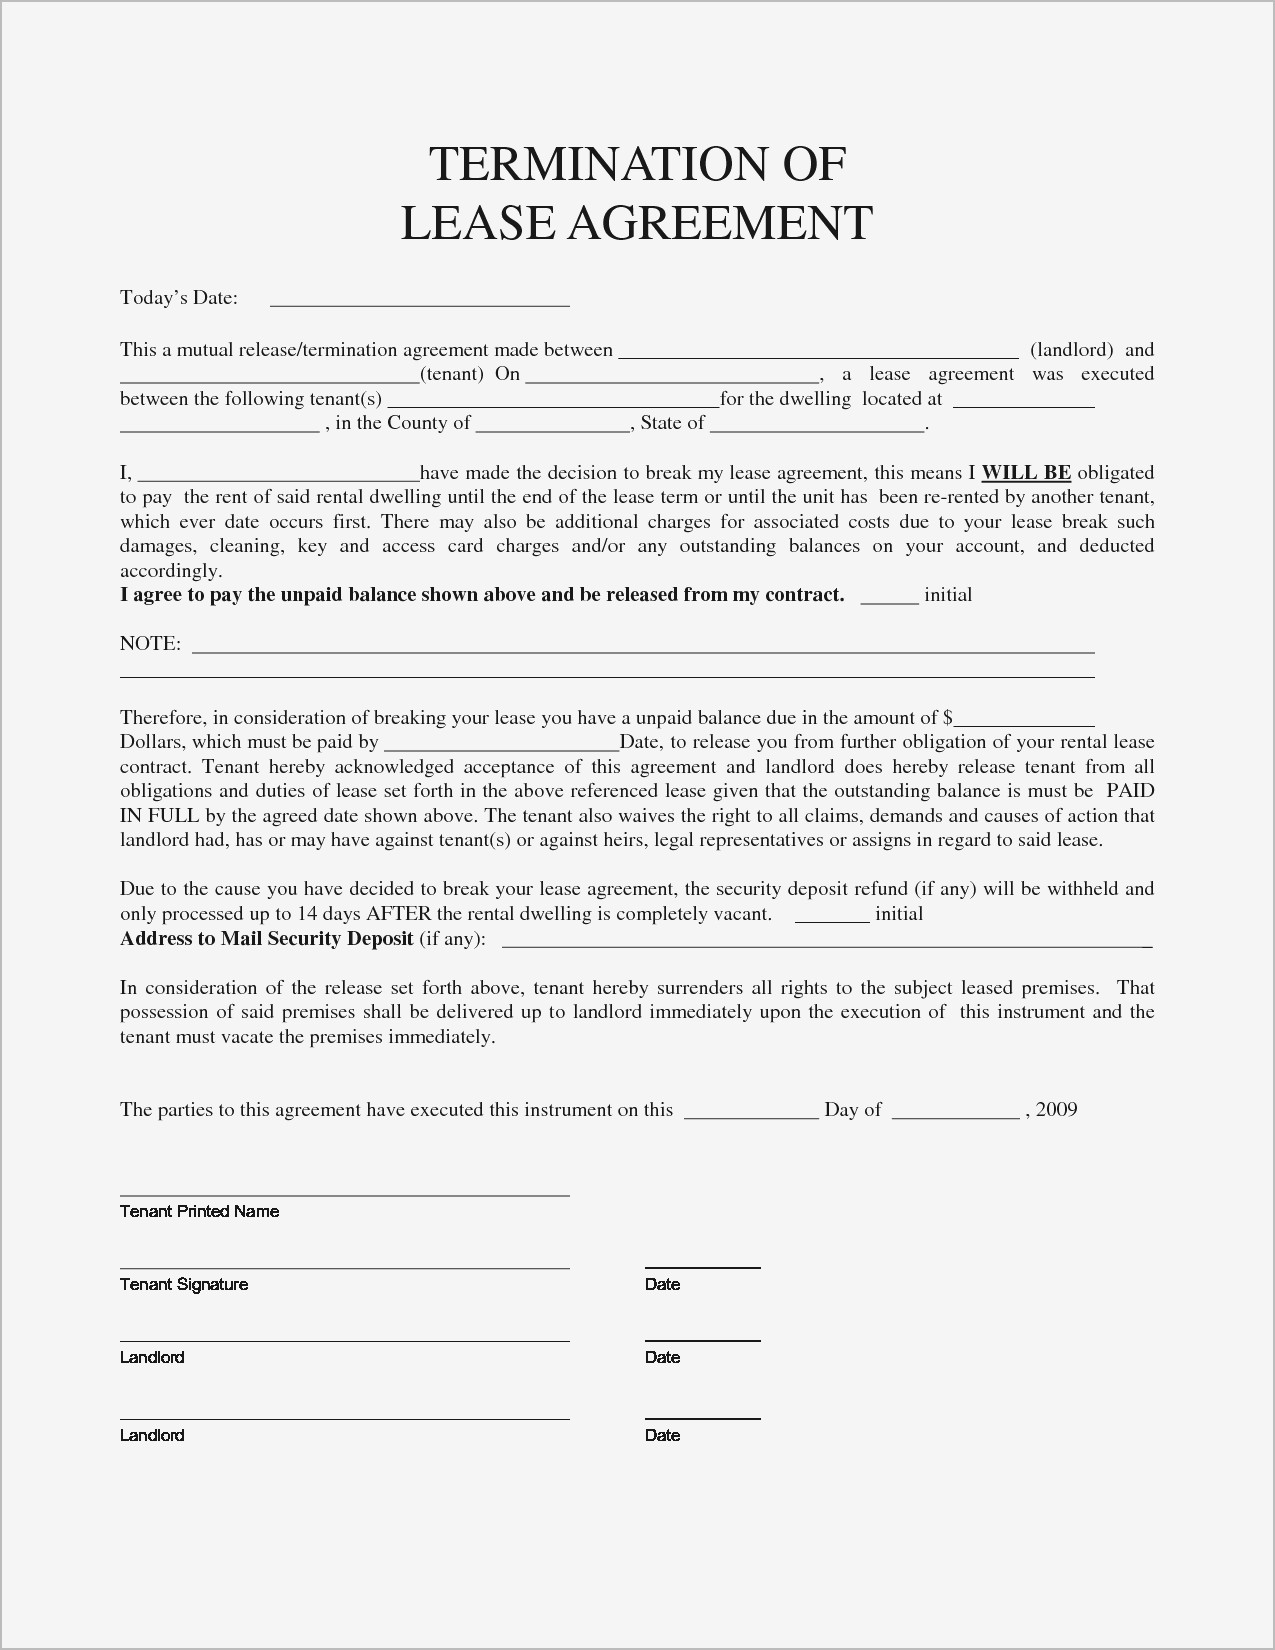 Sample Letter To Landlord Not Renewing Lease from simpleartifact.com